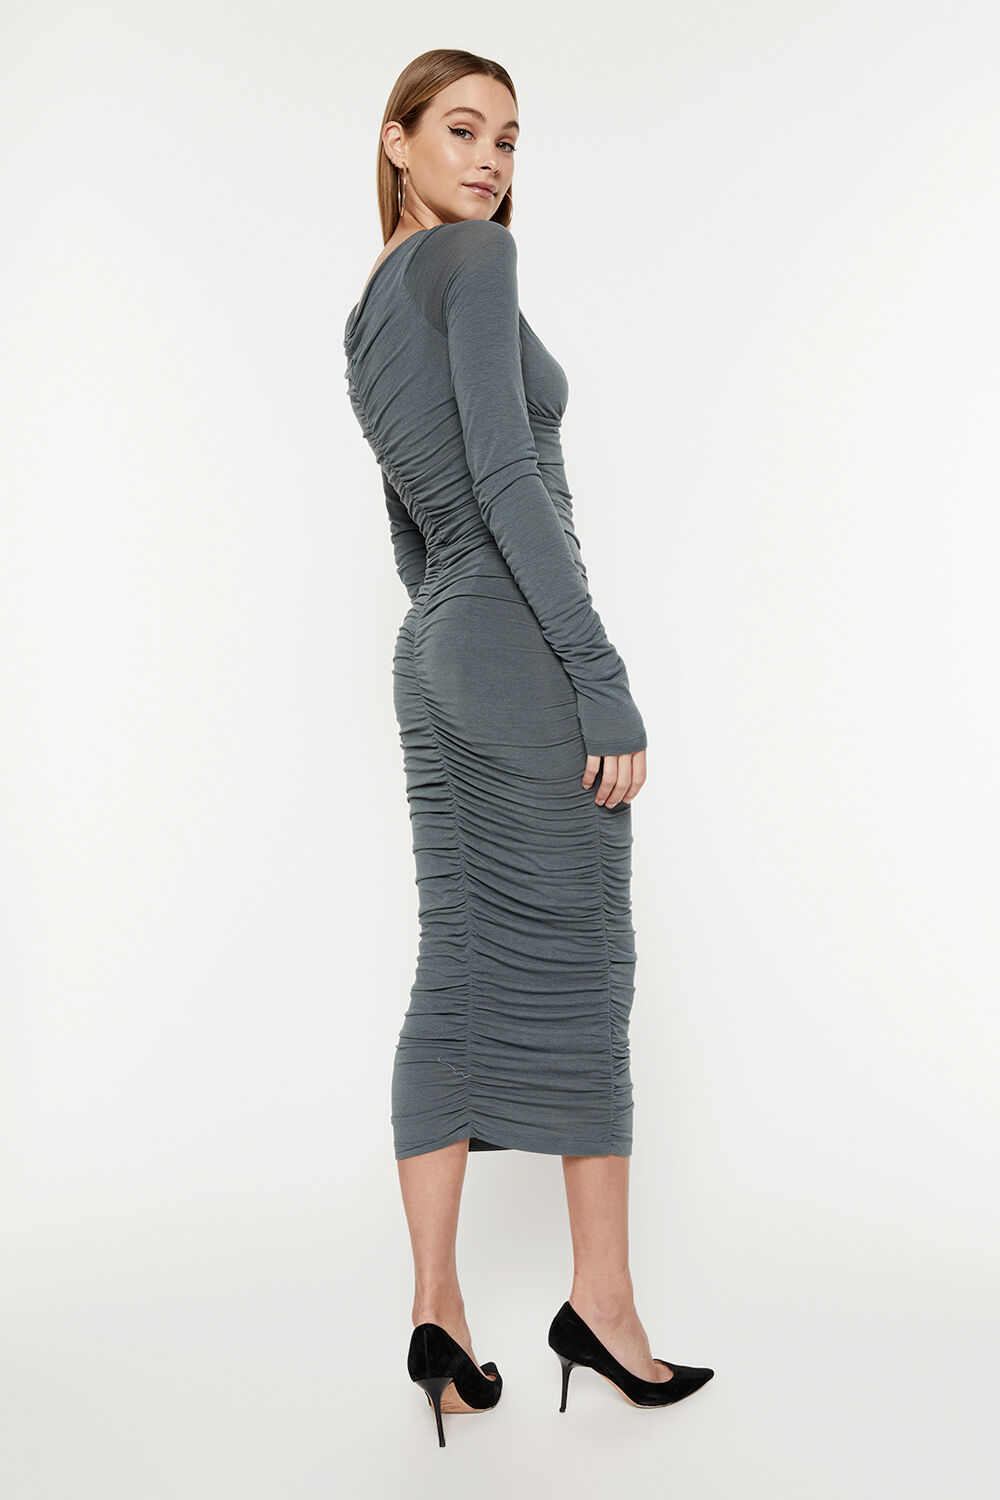 RUCHED DETAIL MIDI DRESS in colour IVY GREEN